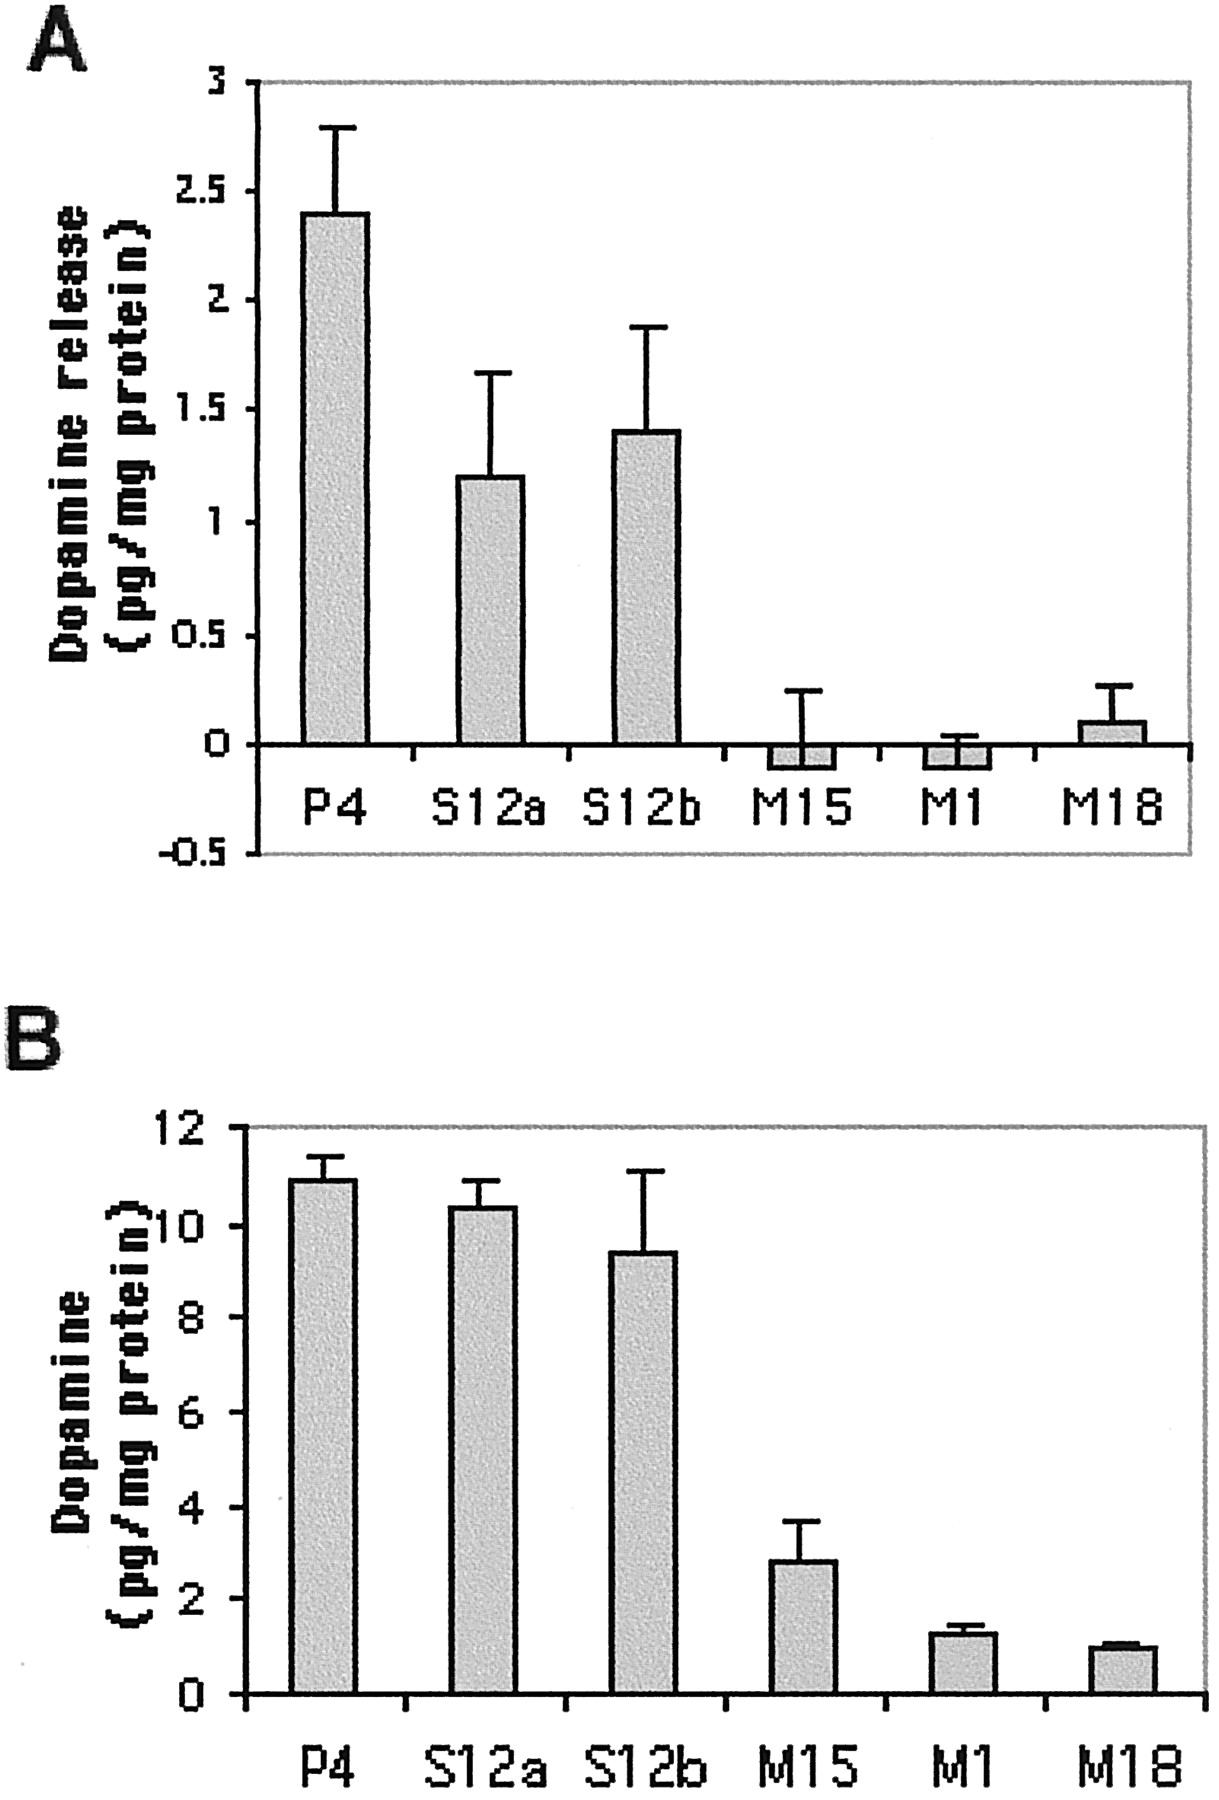 Expression of A53T Mutant But Not Wild-Type α-Synuclein in PC12